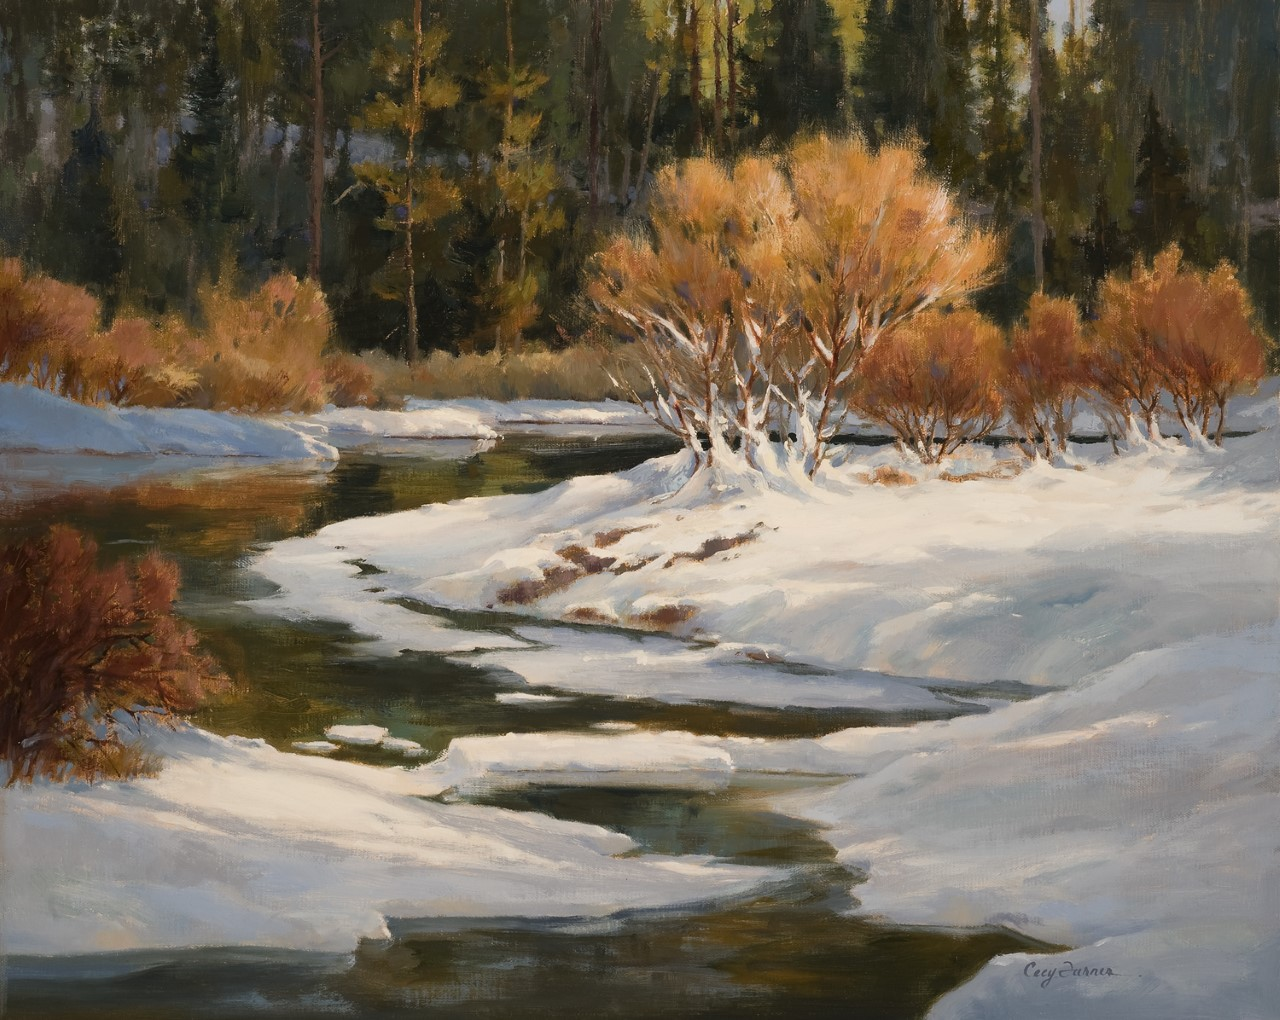 Cecy Turner - Winter Willows in Moraine Park